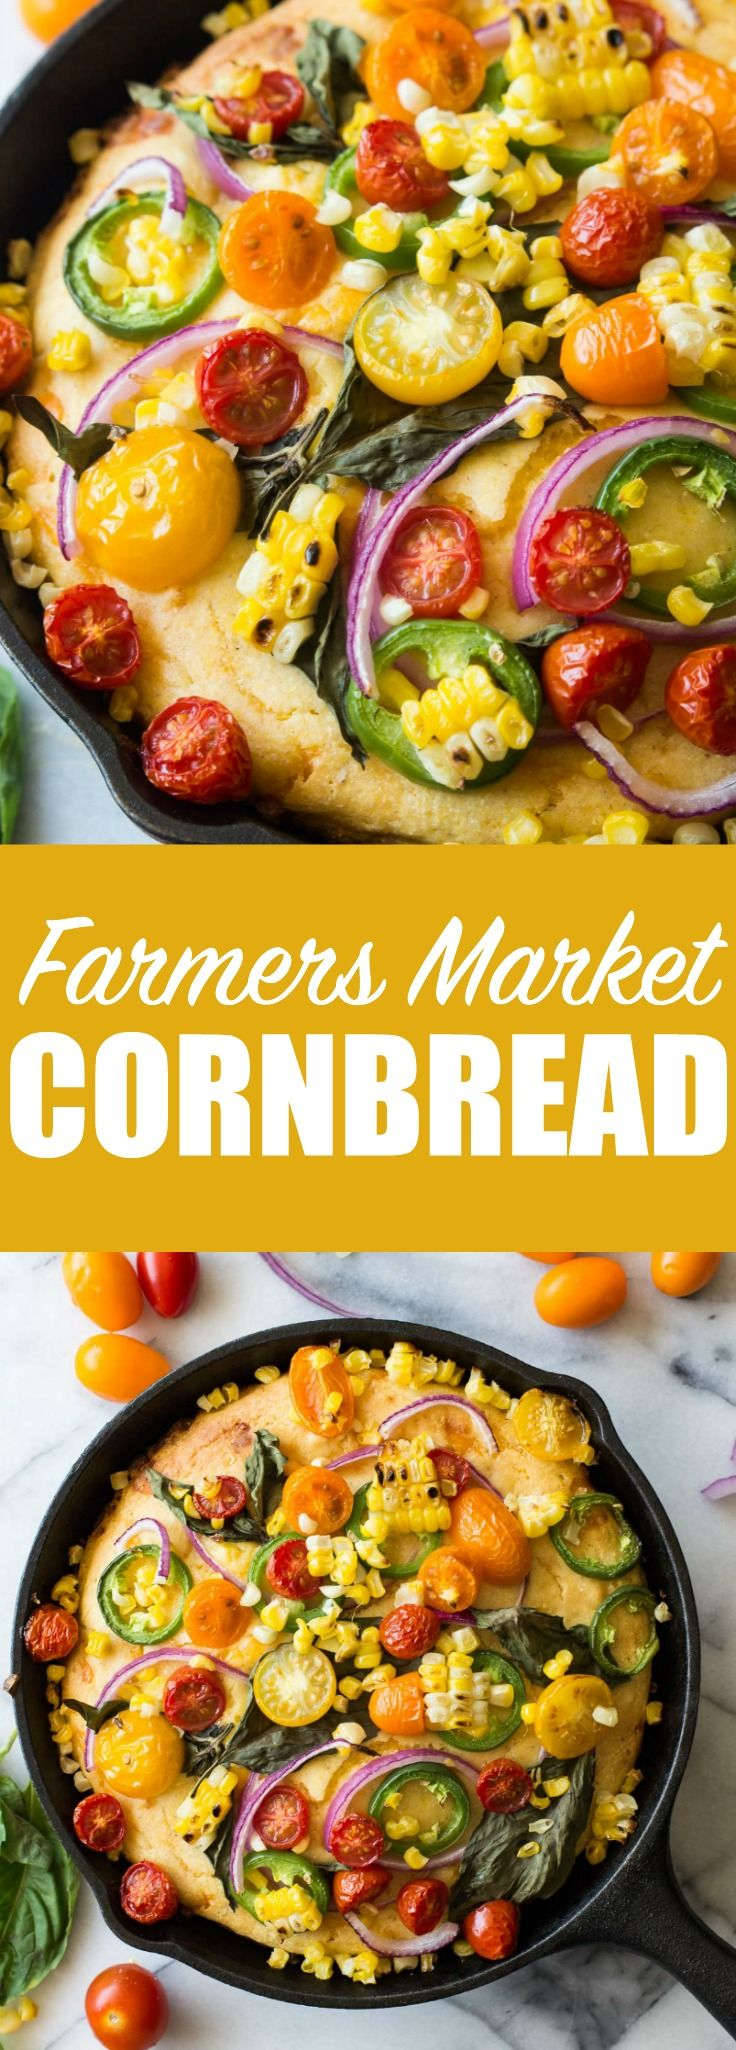 Love this! This cornbread is loaded with fresh grilled corn, cheese, and topped with farmers market finds! Tomato, jalapeño, red onion, fresh basil, and even more grilled corn! Make it your own by adding your own toppings!